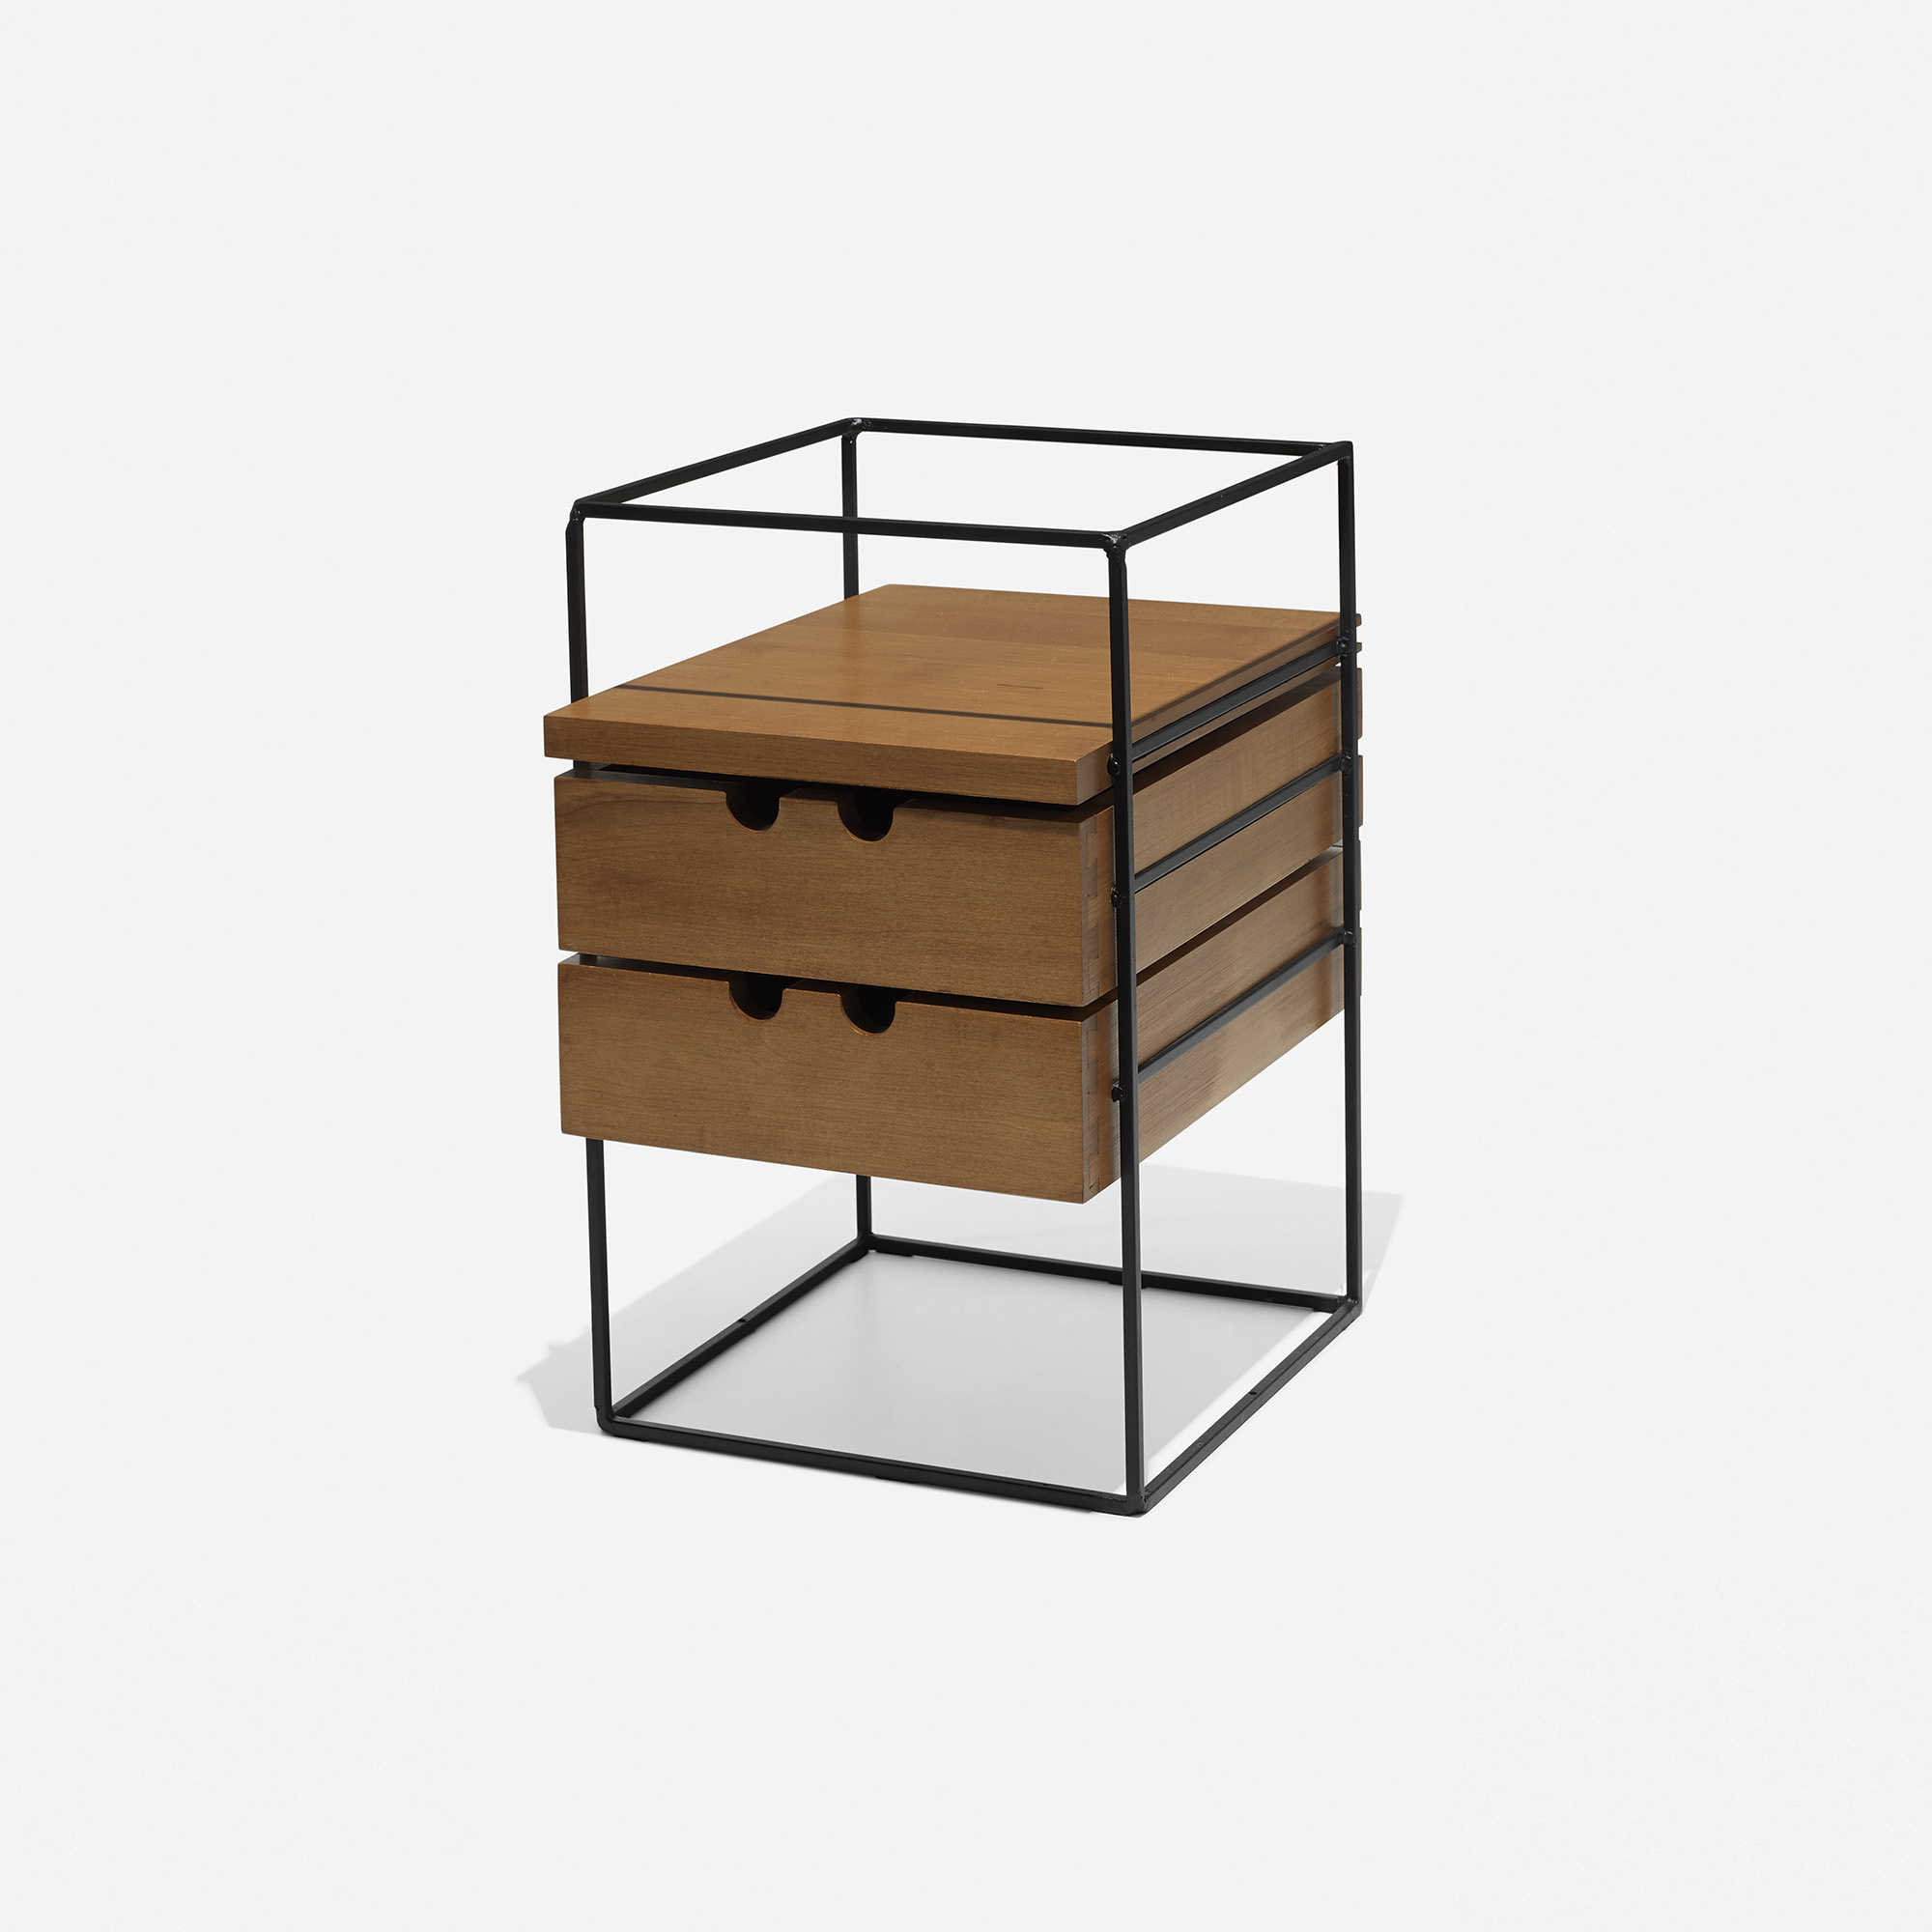 101 Paul Mccobb Planner Group Desk Organizer Modern Design 28 March 2013 Auctions Wright Auctions Of Art And Design